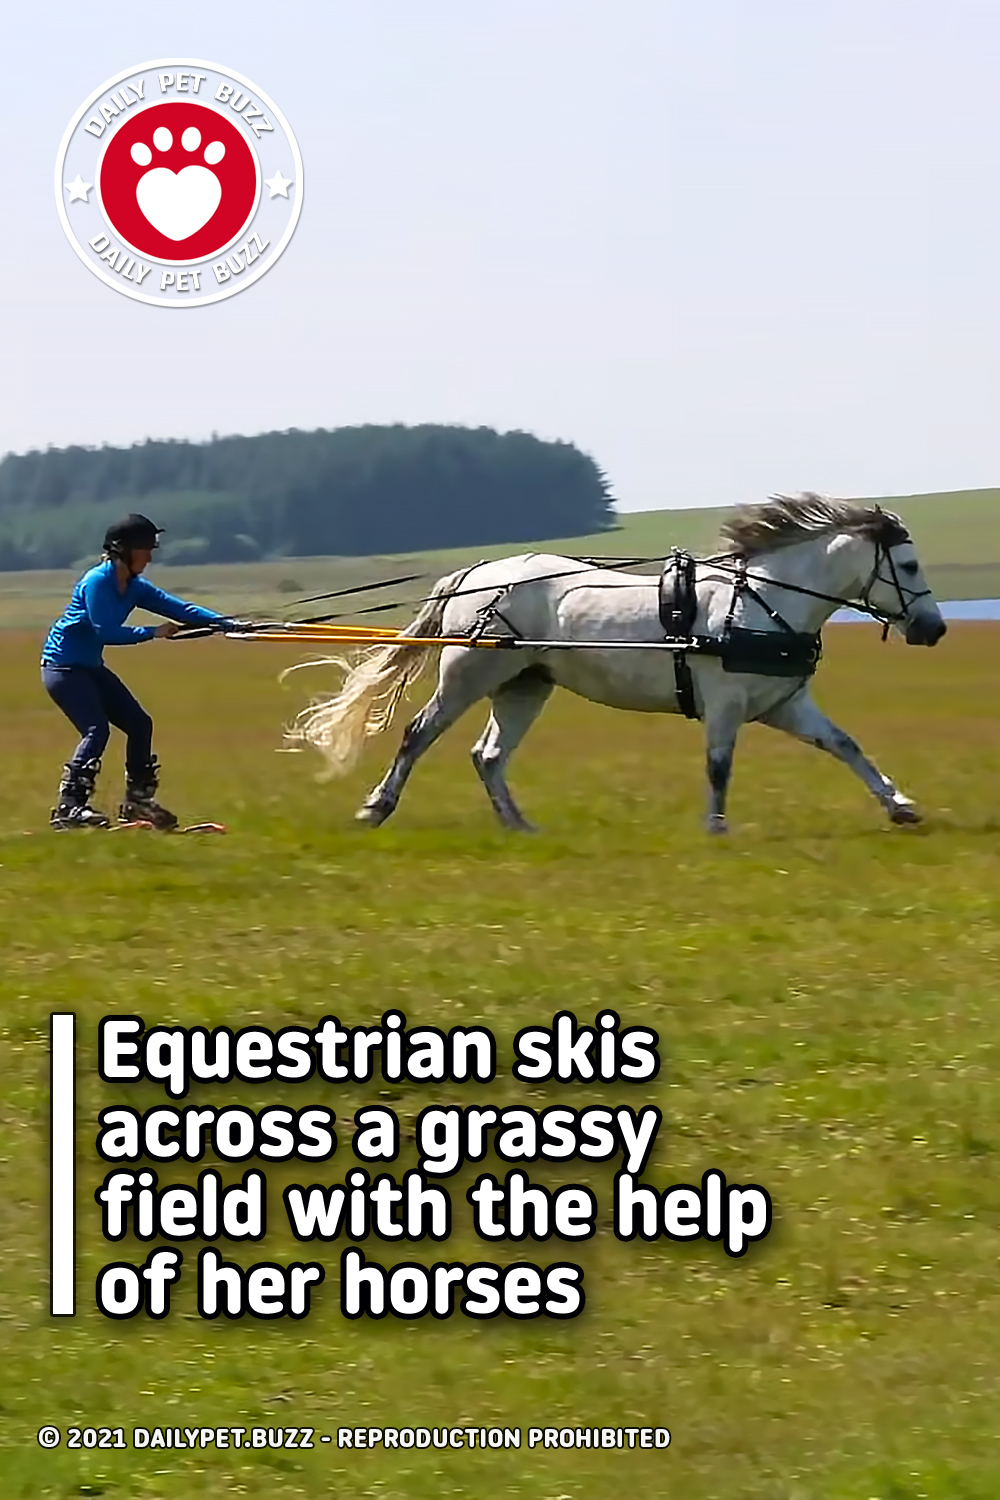 Equestrian skis across a grassy field with the help of her horses